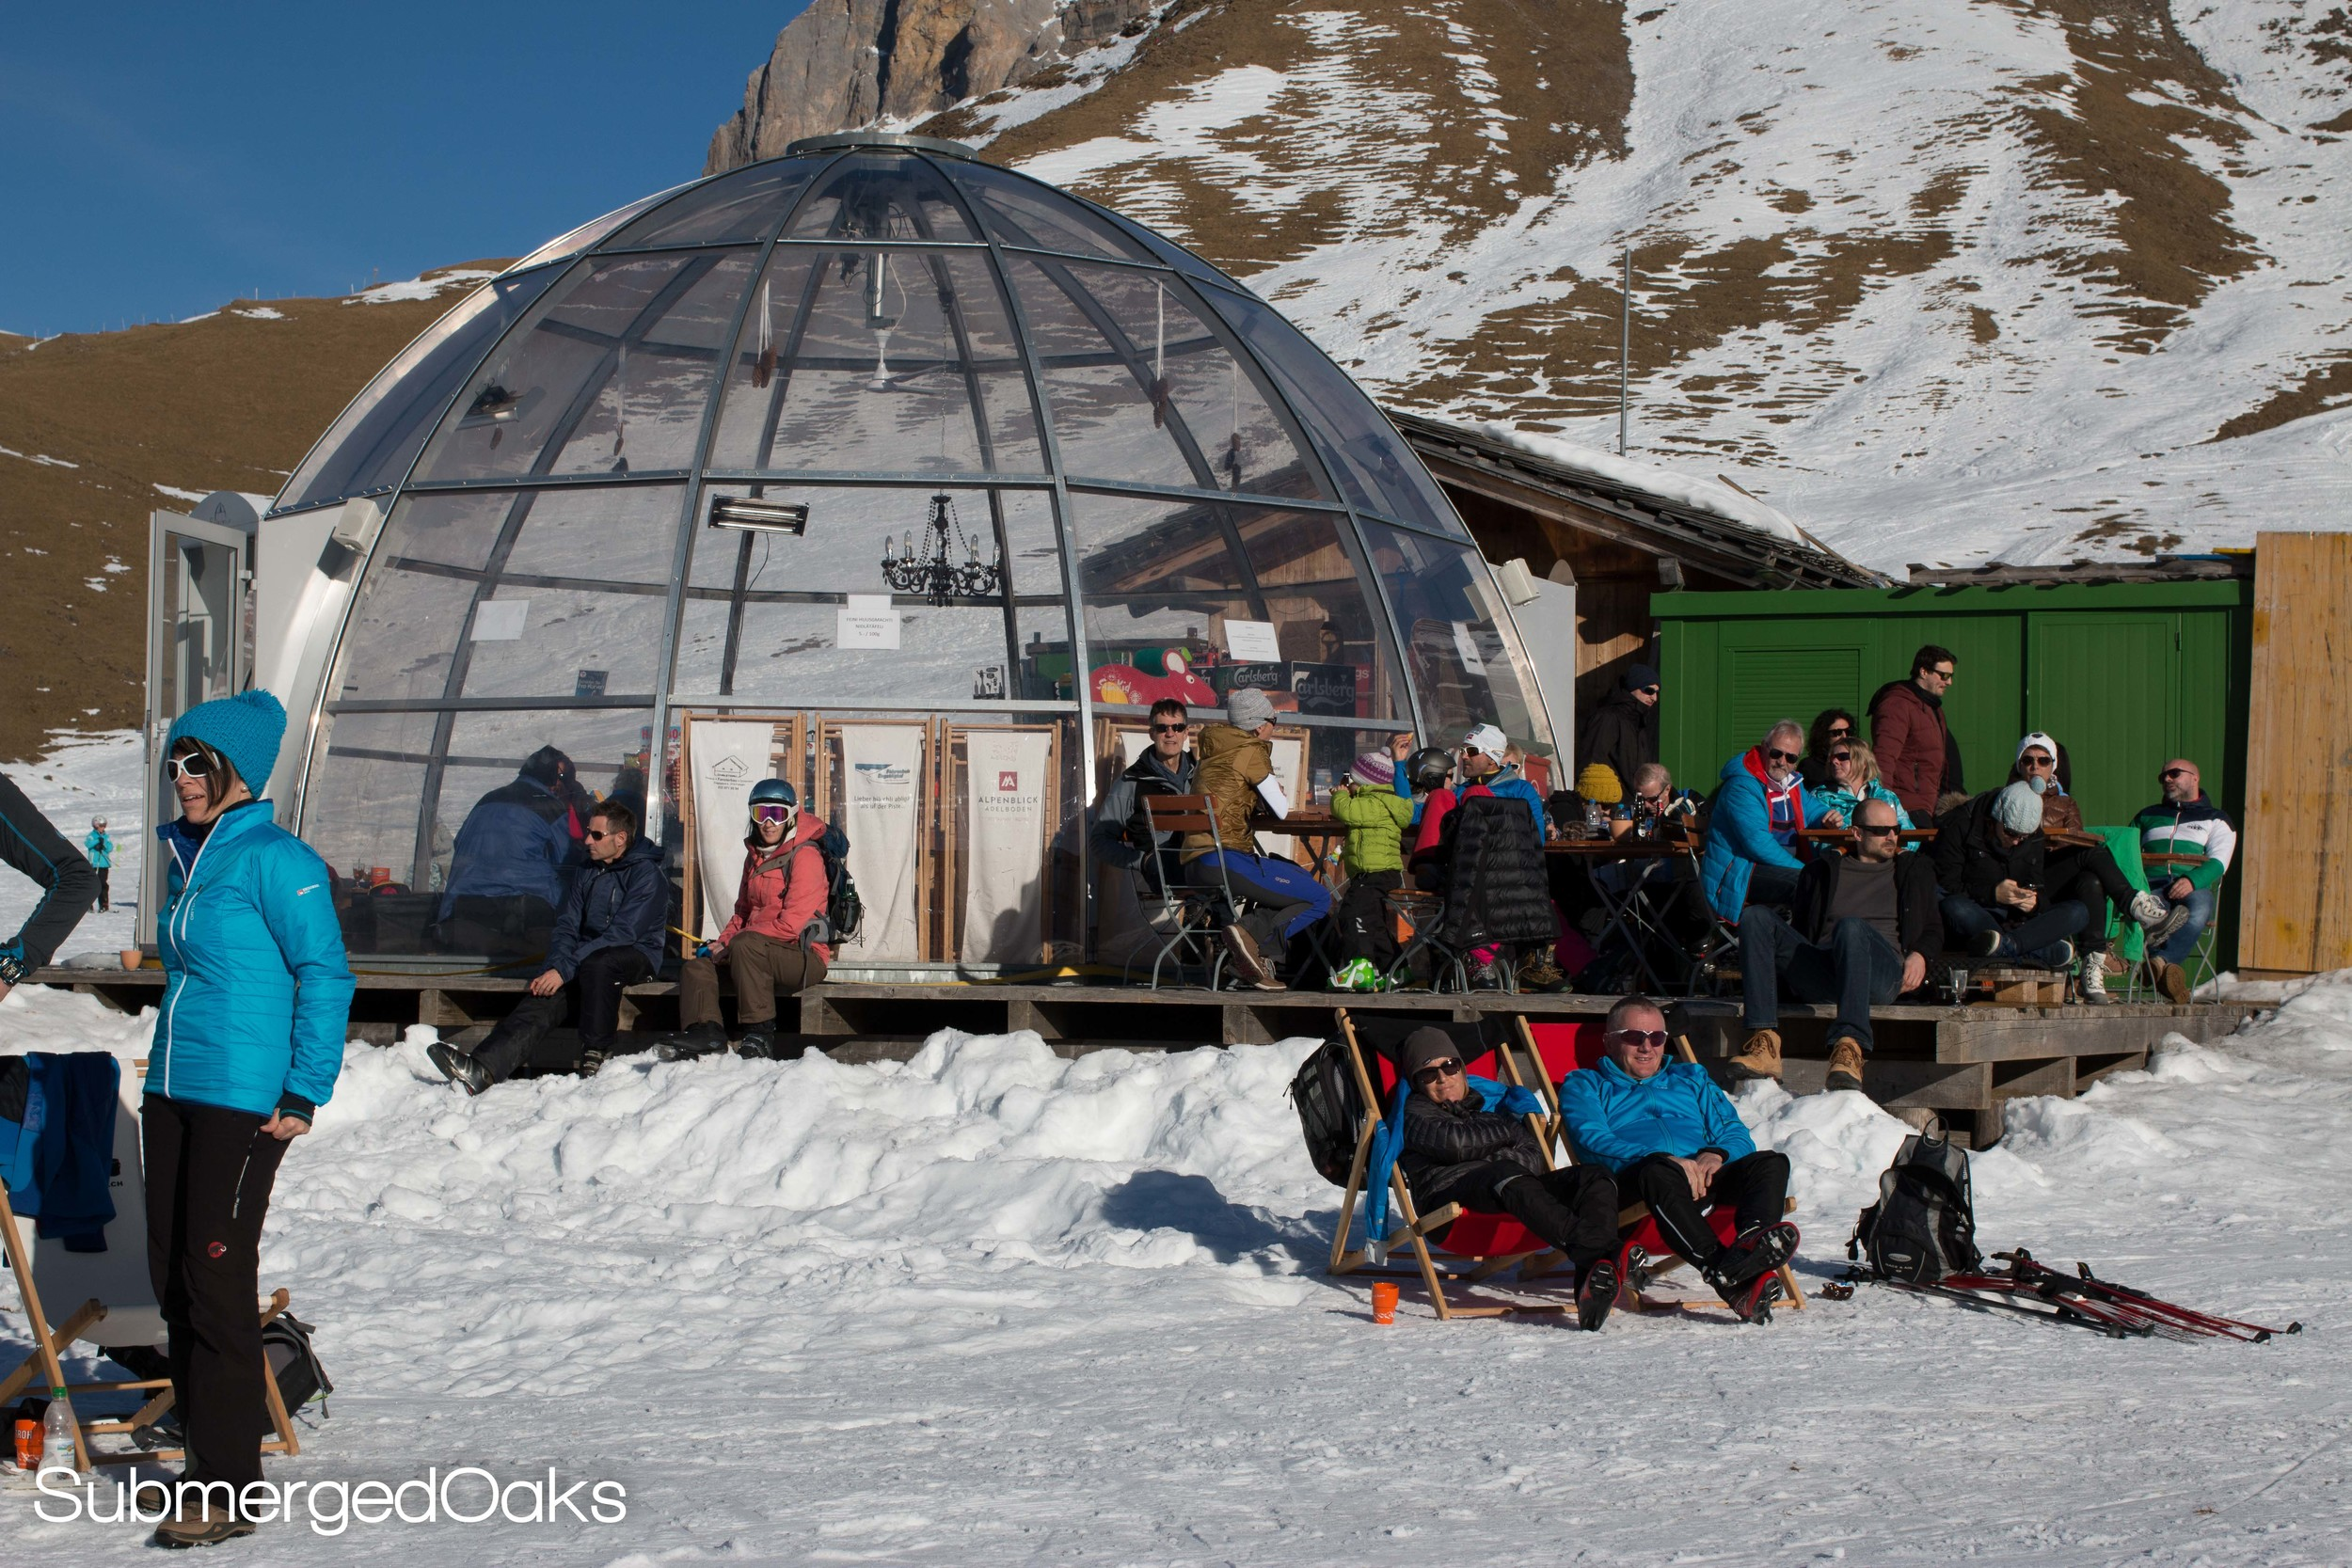 Glass igloo to warm up in and grab some snacks